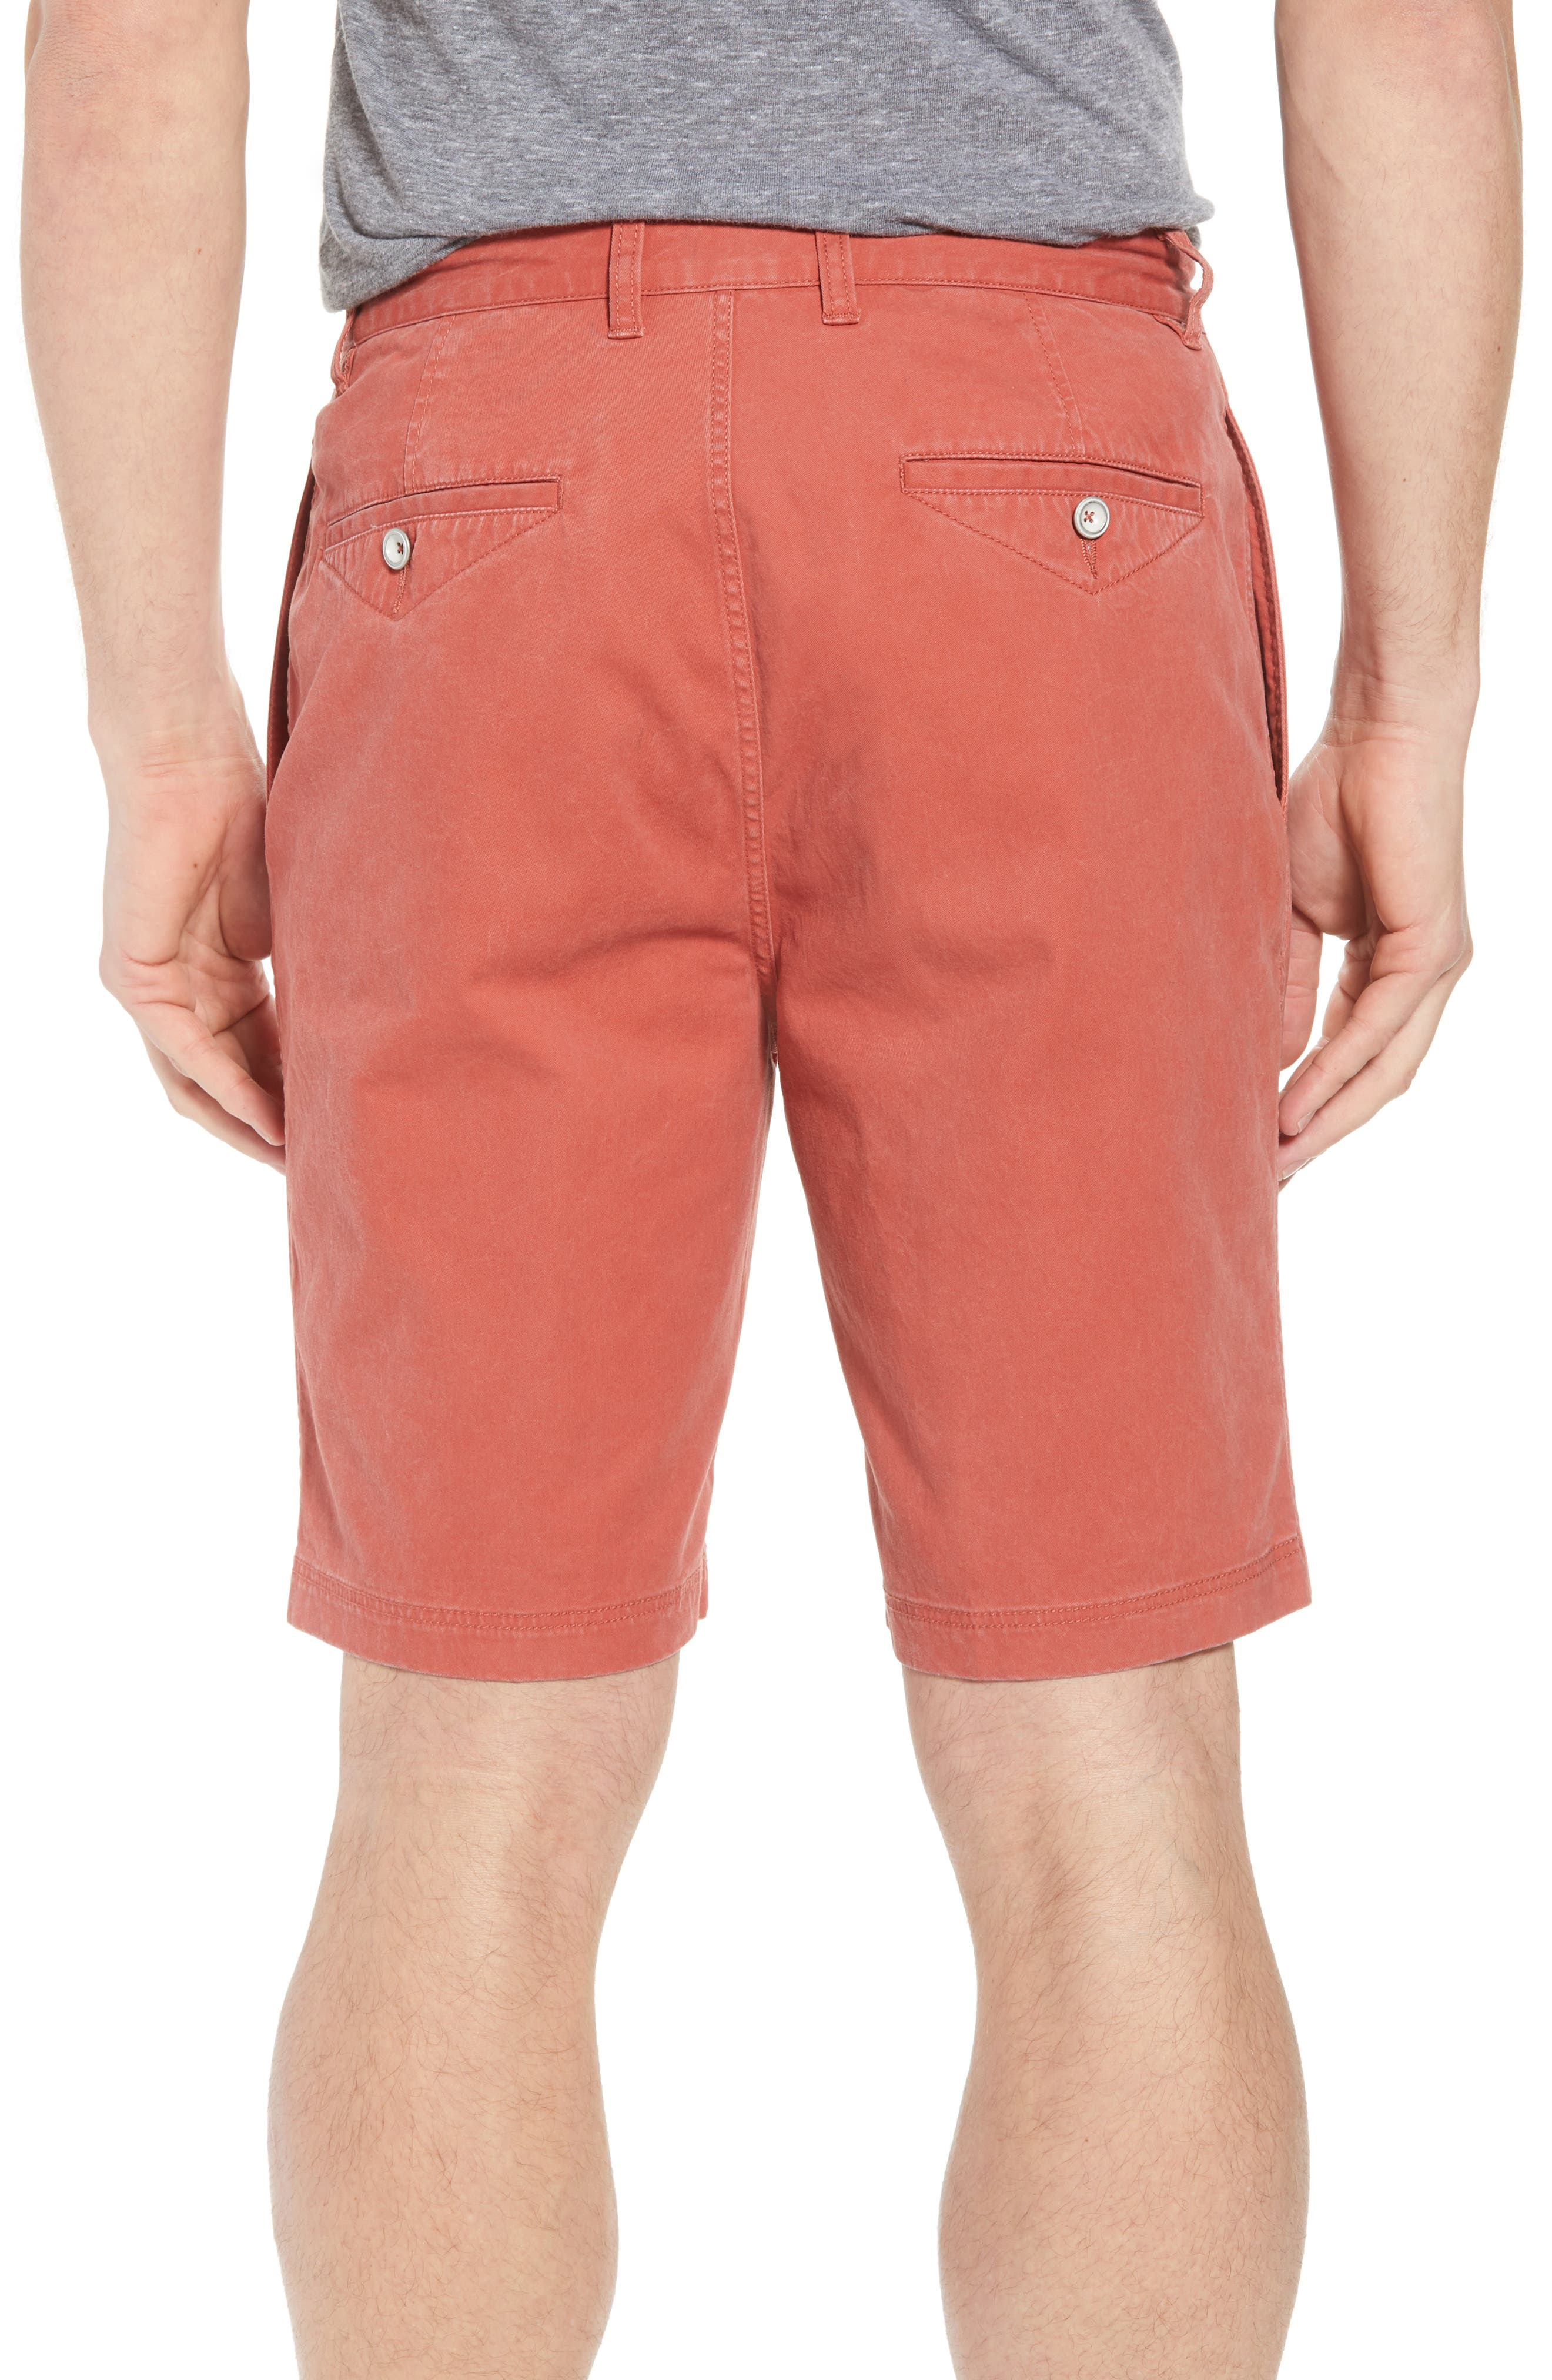 Glenburn Shorts,                             Alternate thumbnail 3, color,                             Red Ochre